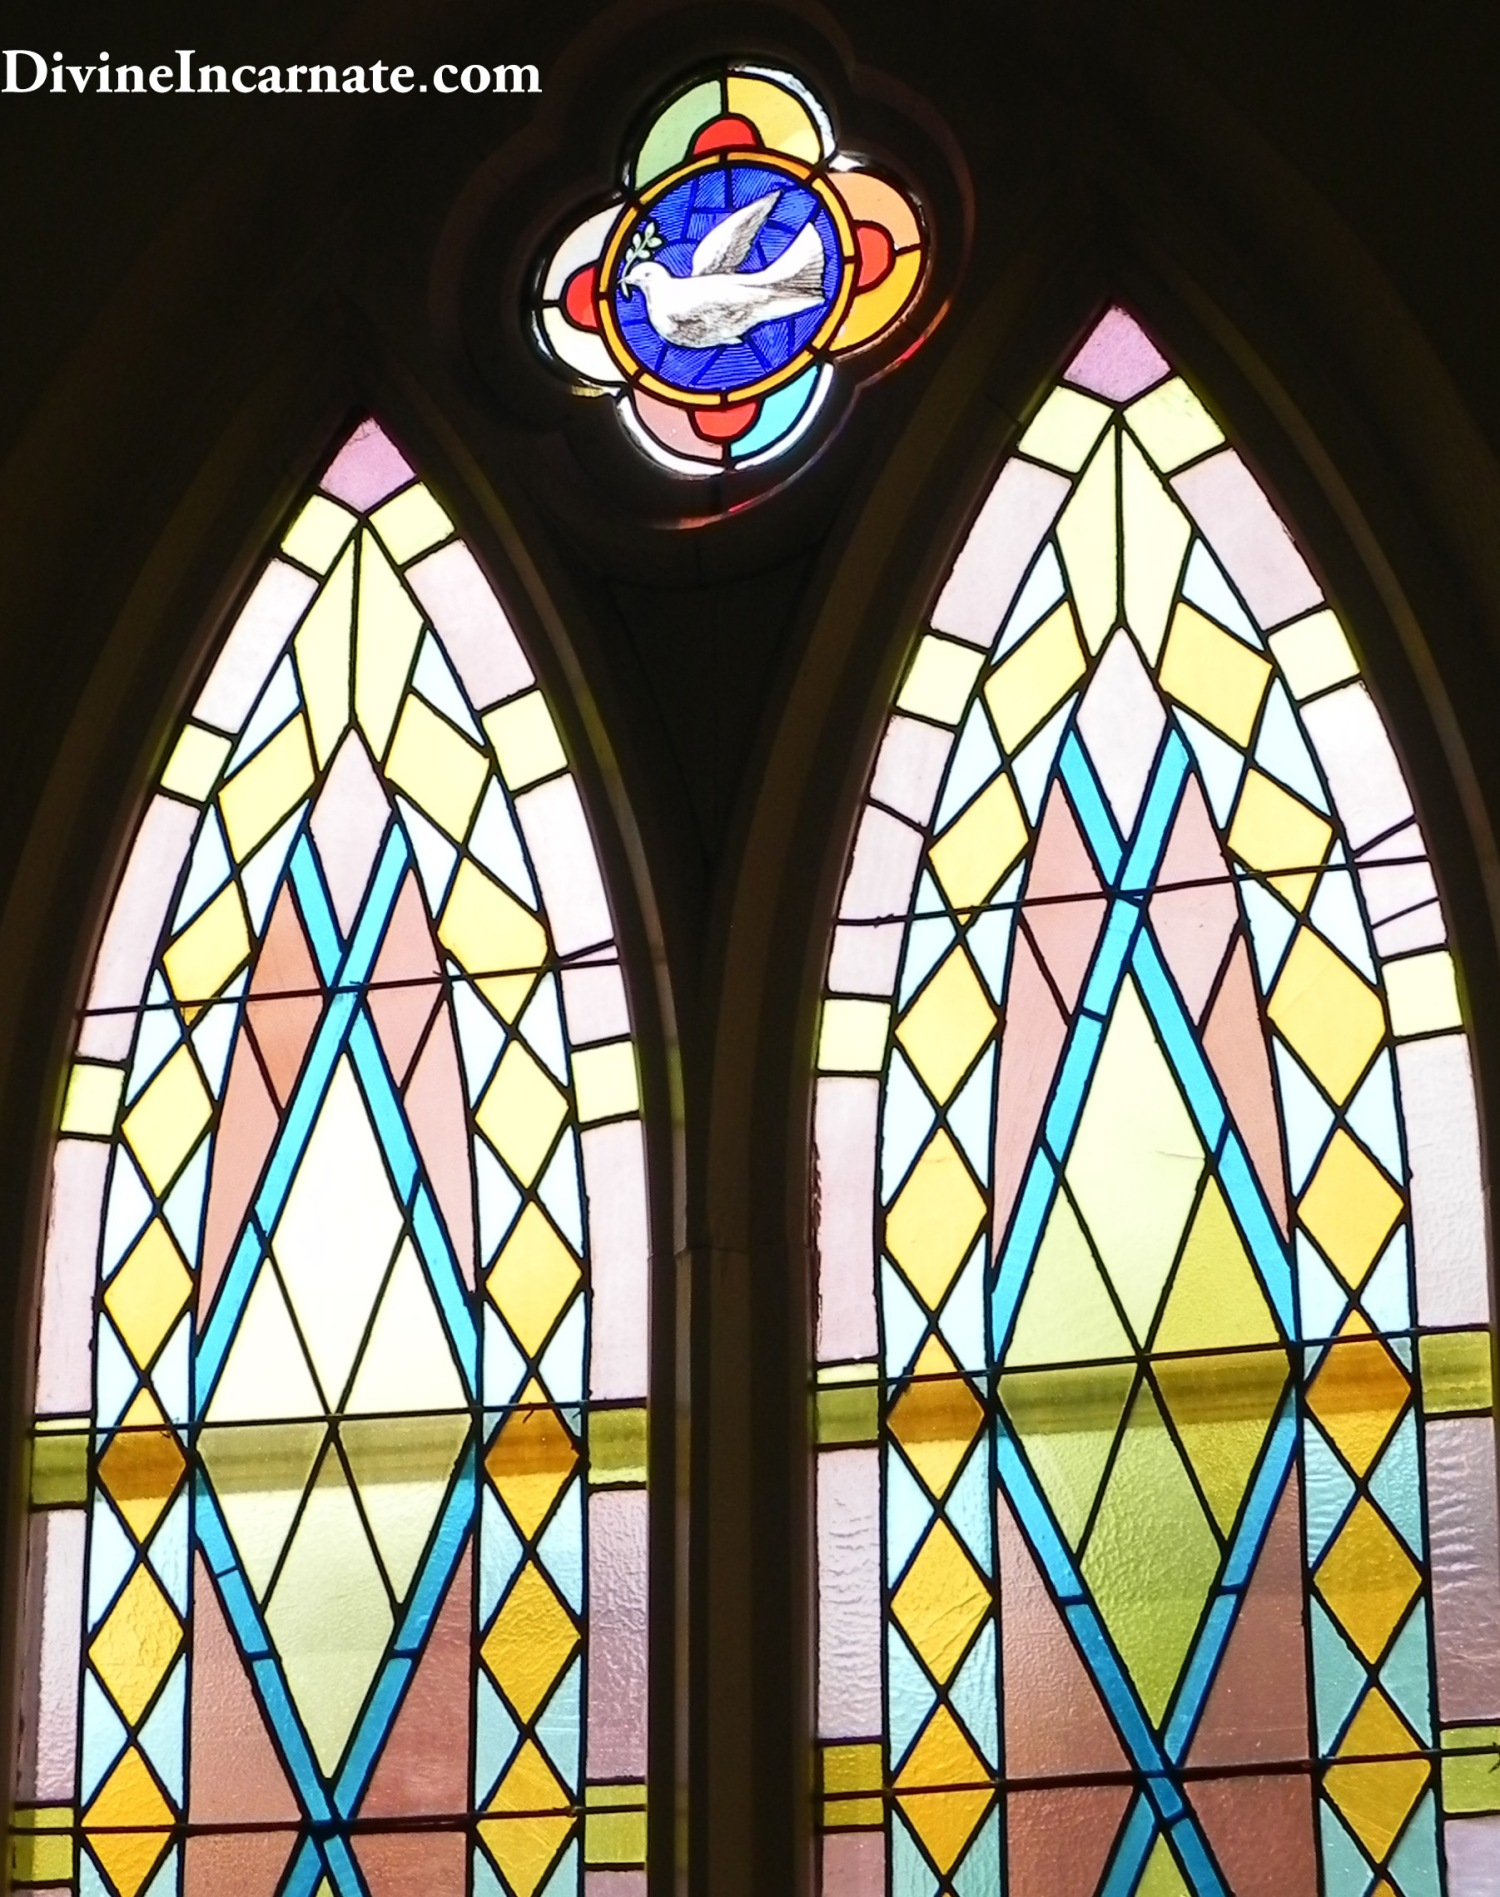 Stained-glass window, Holy Spirit, church